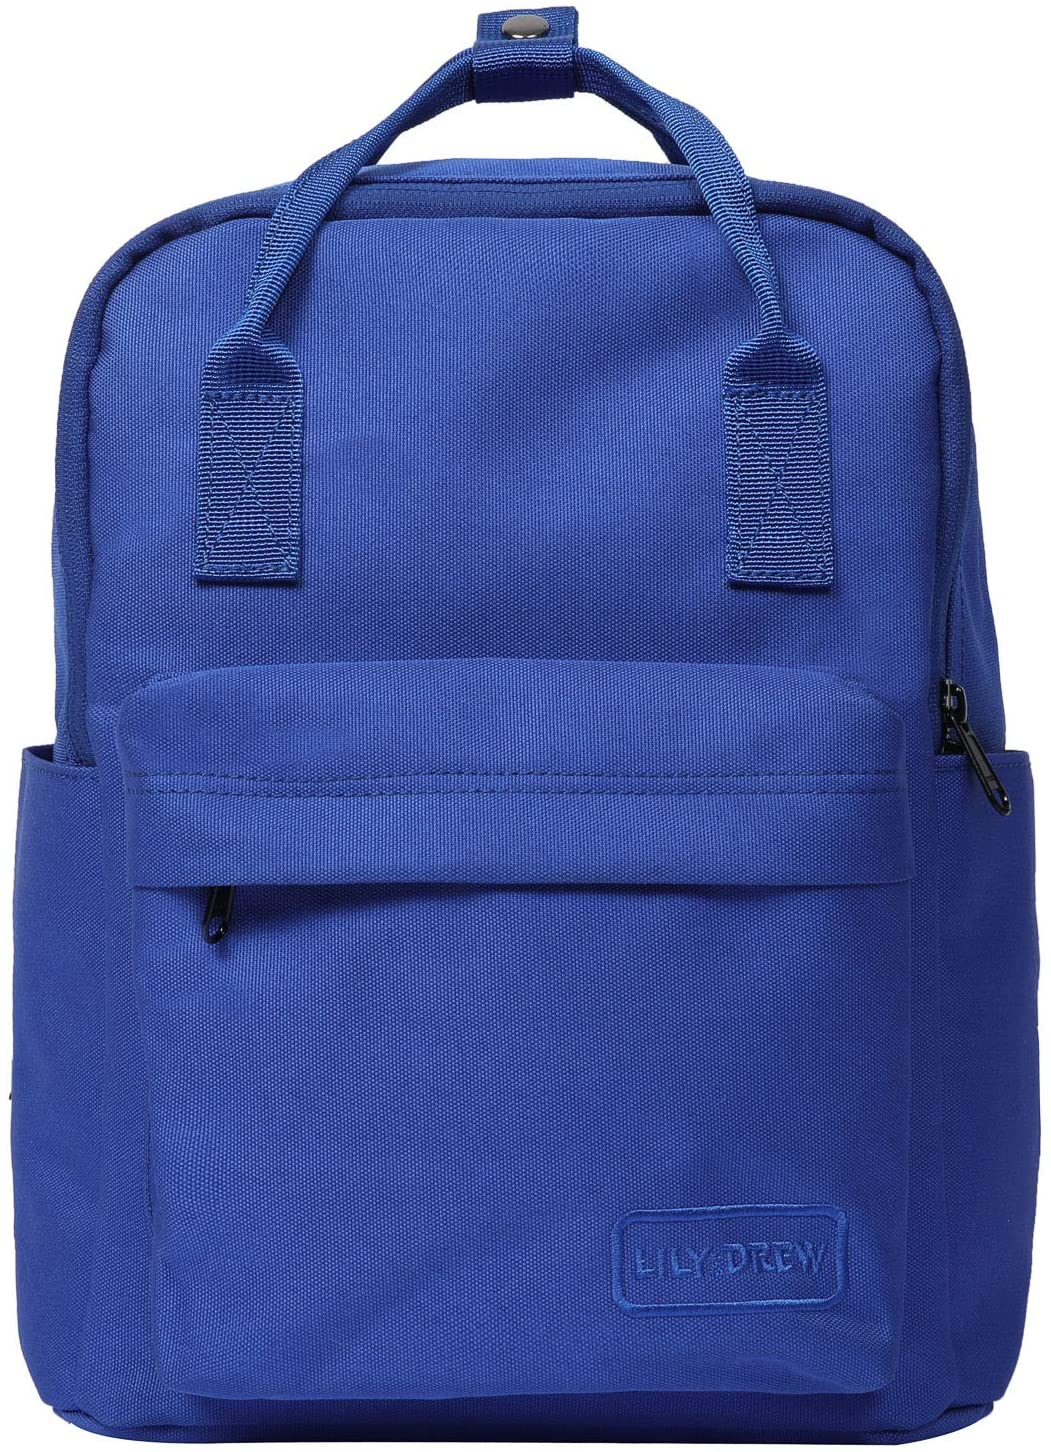 Lily & Drew Small Casual Lightweight Mini Travel Backpack Purse with Top Handles Waterproof for Women (Poly-Royal Blue)